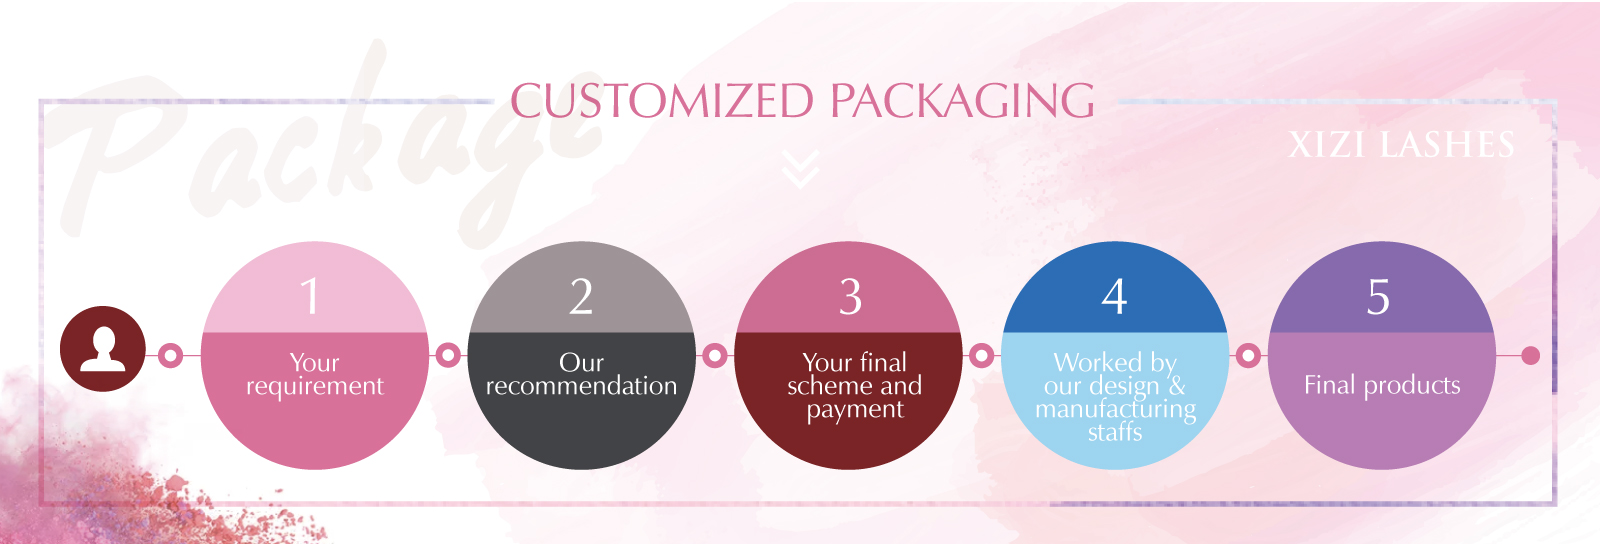 customized packaging- xizi eyelashes